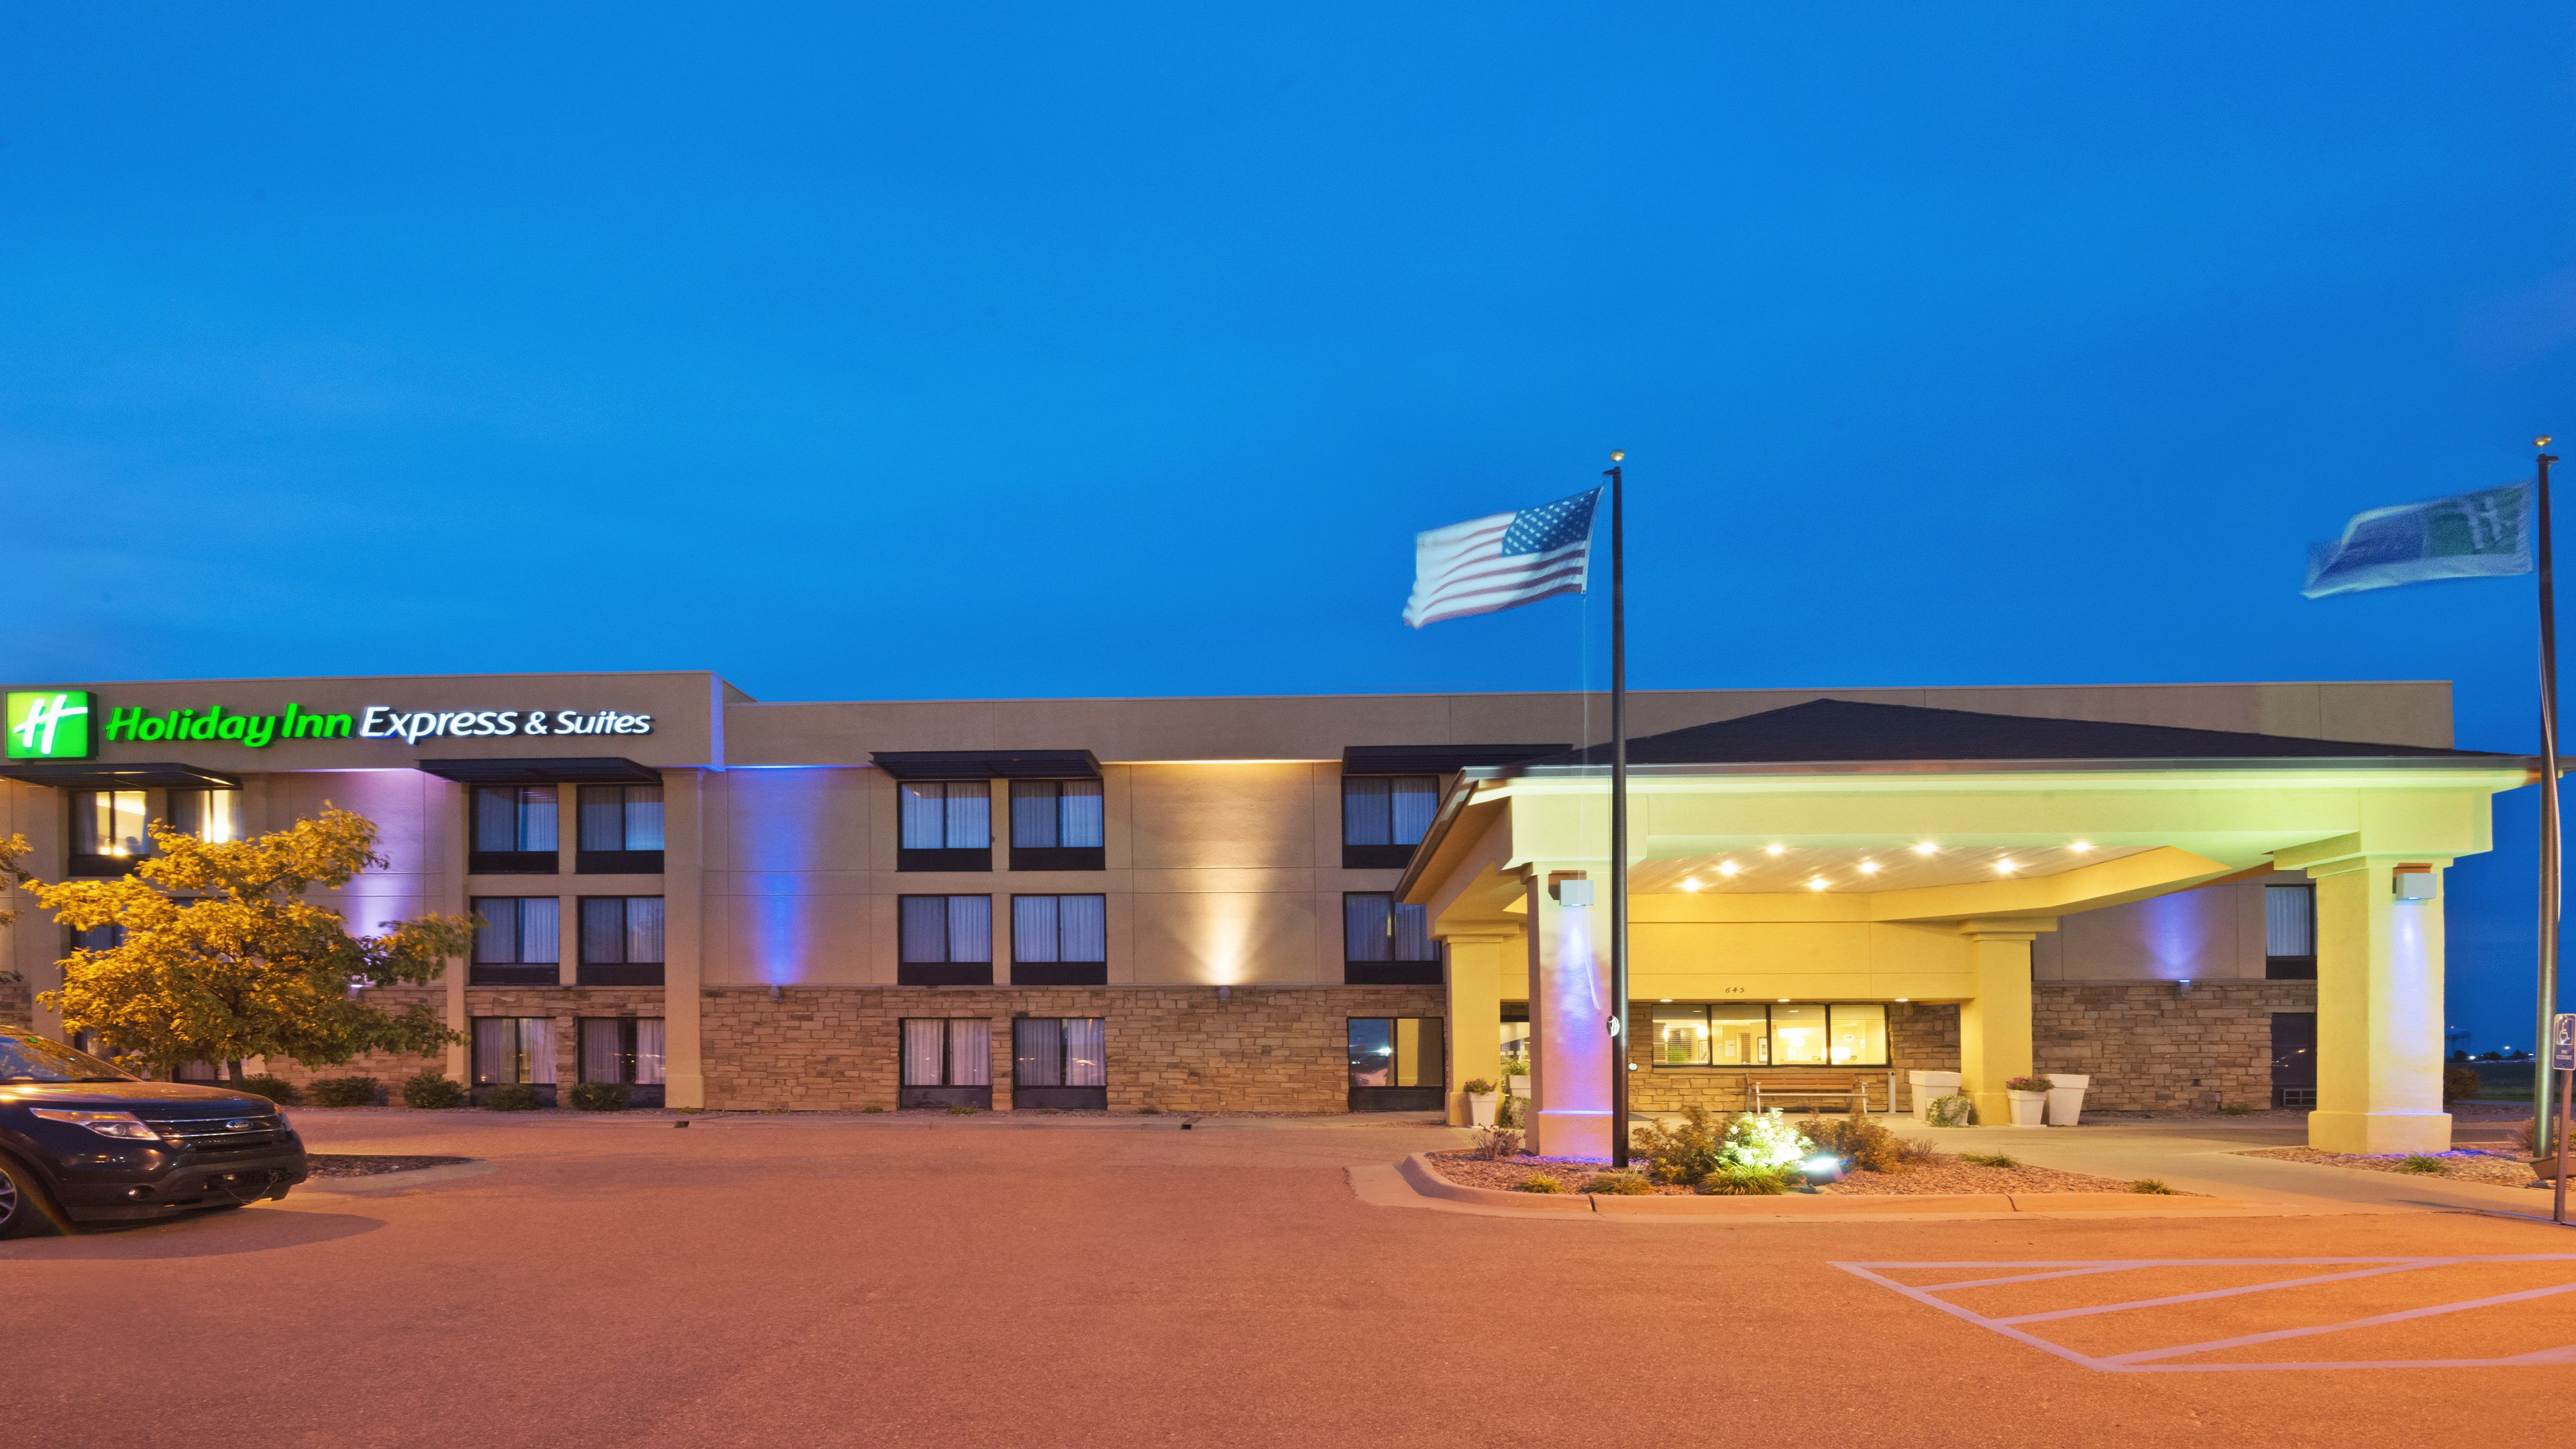 Holiday Inn Express Amp Suites Colby In Colby Ks 67701